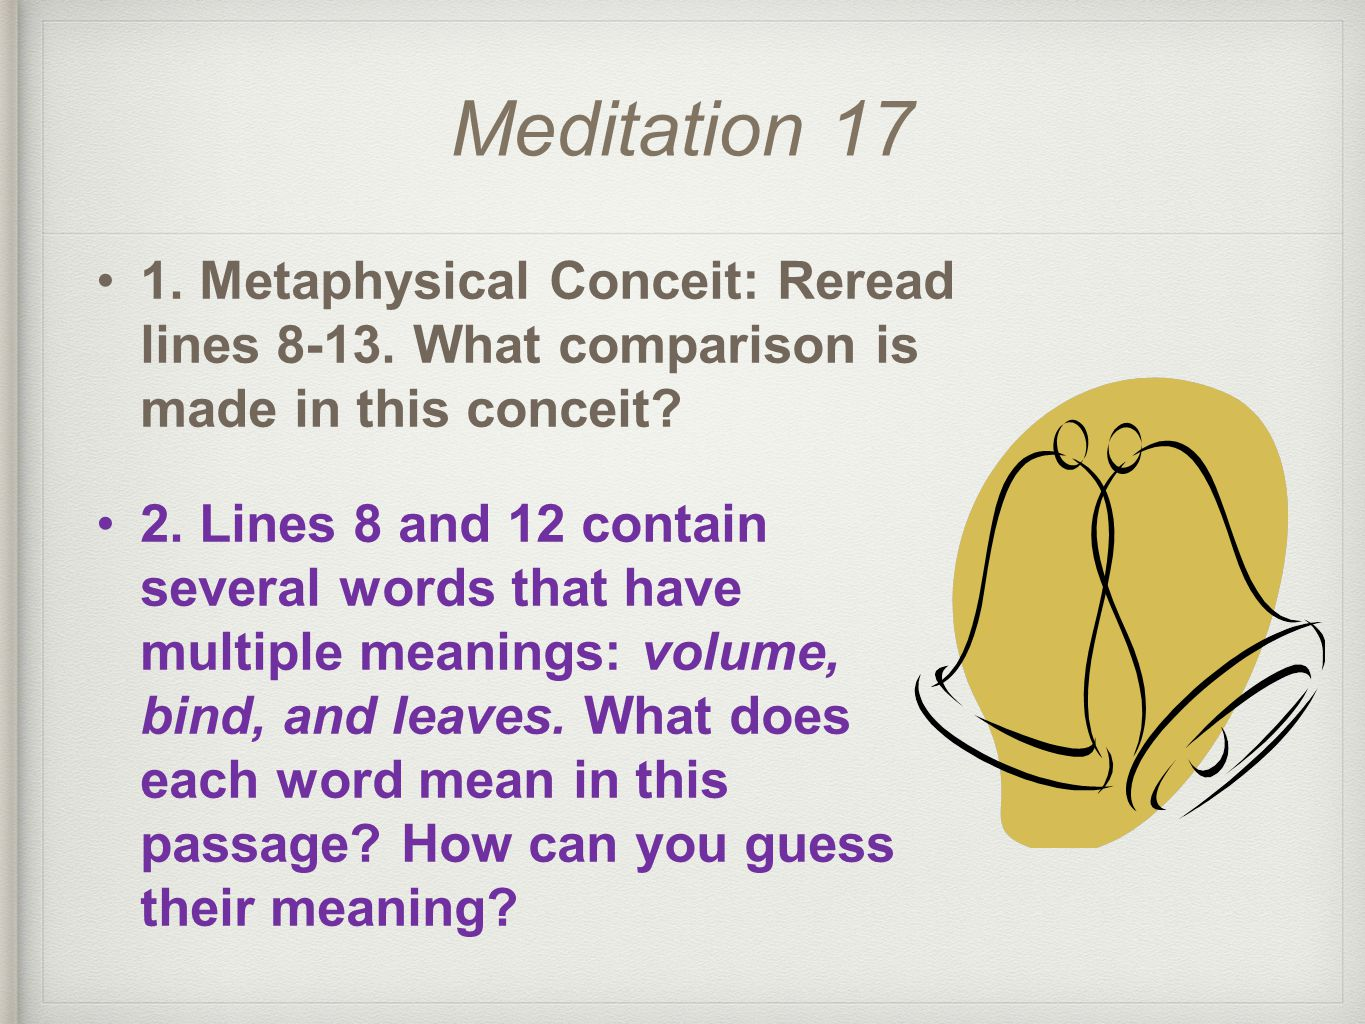 meditation 17 1 1 classes pages relax and  this meditation is designed to give you a great night's sleep total body workout  coby langford, 5 mins  chandra goswami, 17.